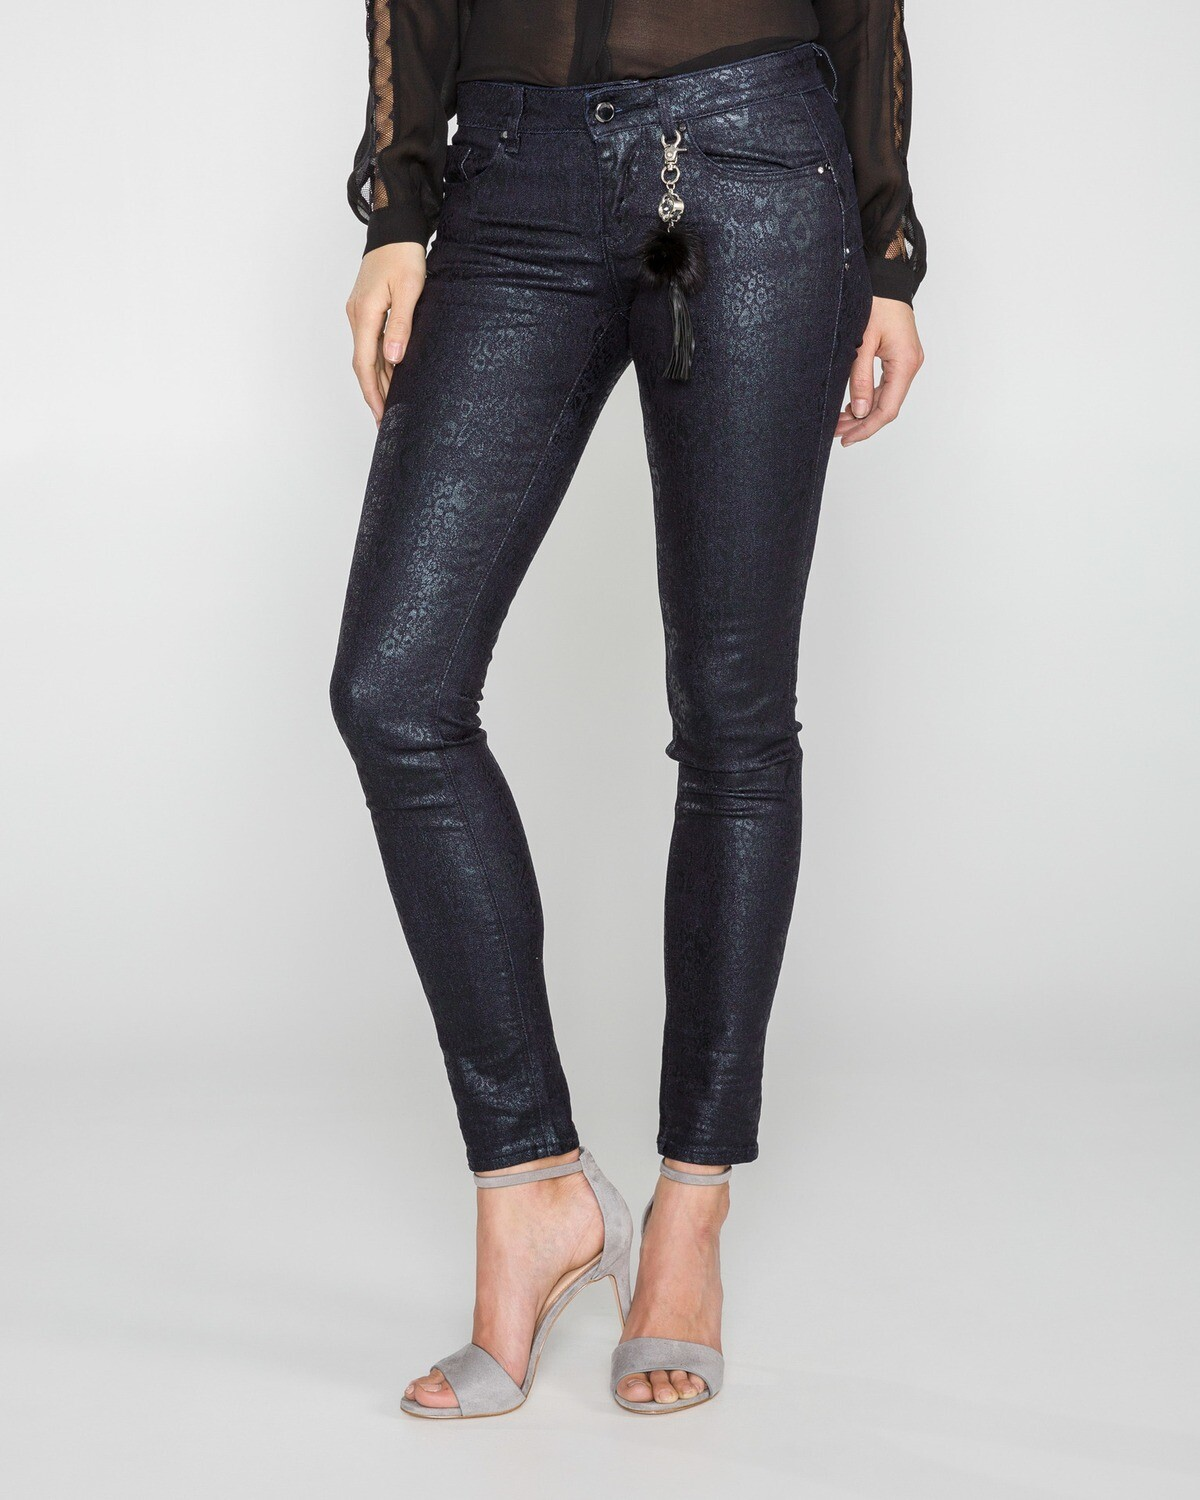 Jeans nero shape up skinny